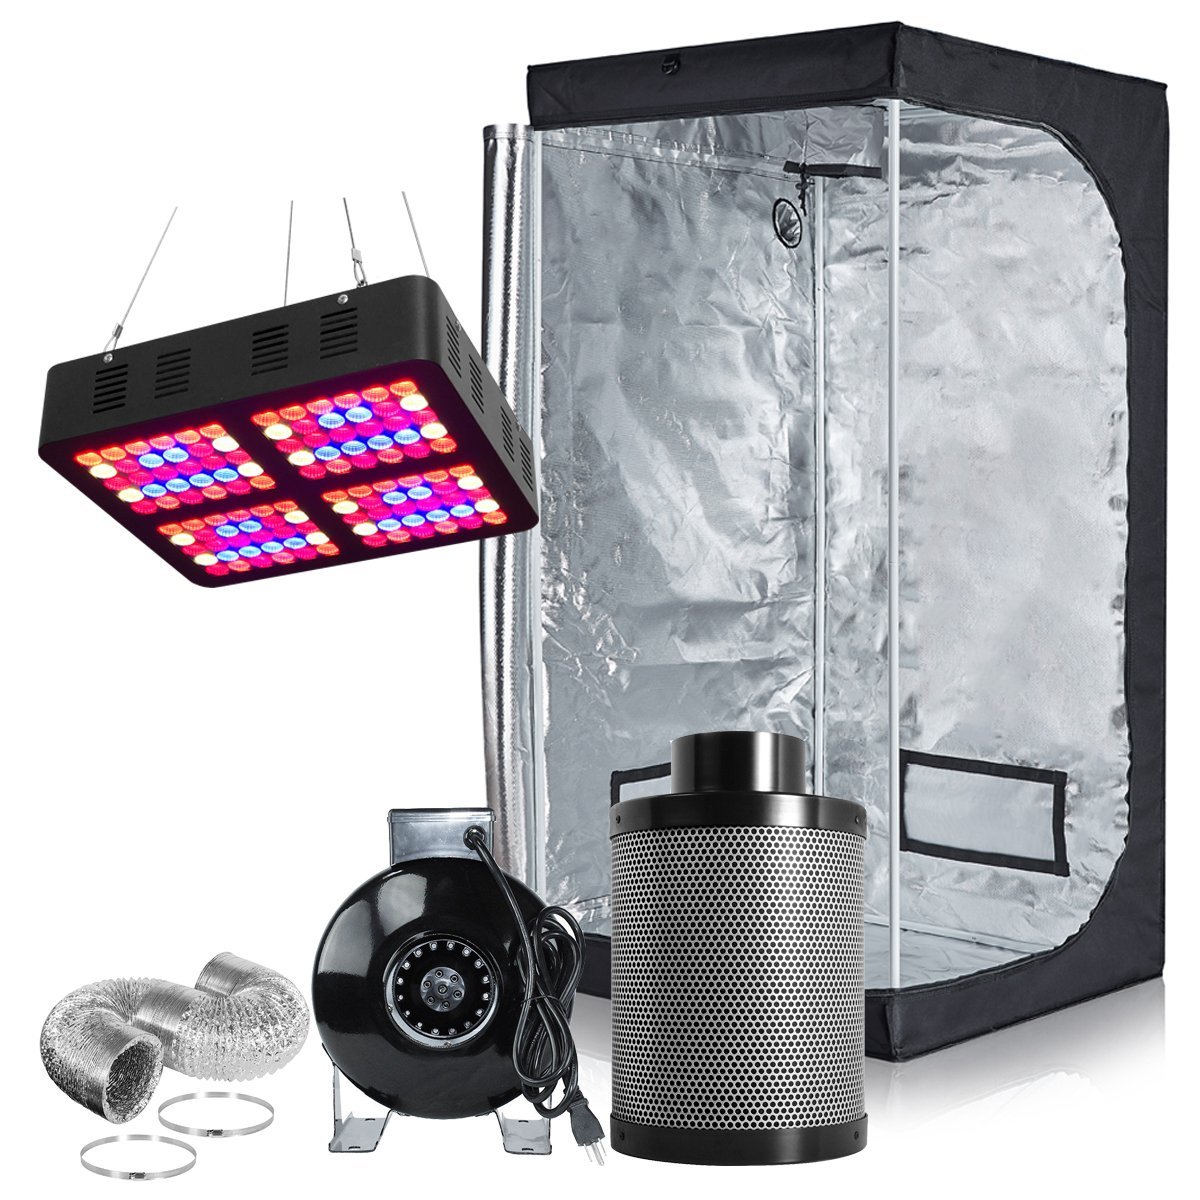 PrimeGarden Full Spectrum LED 600W Grow Tent Complete Kit